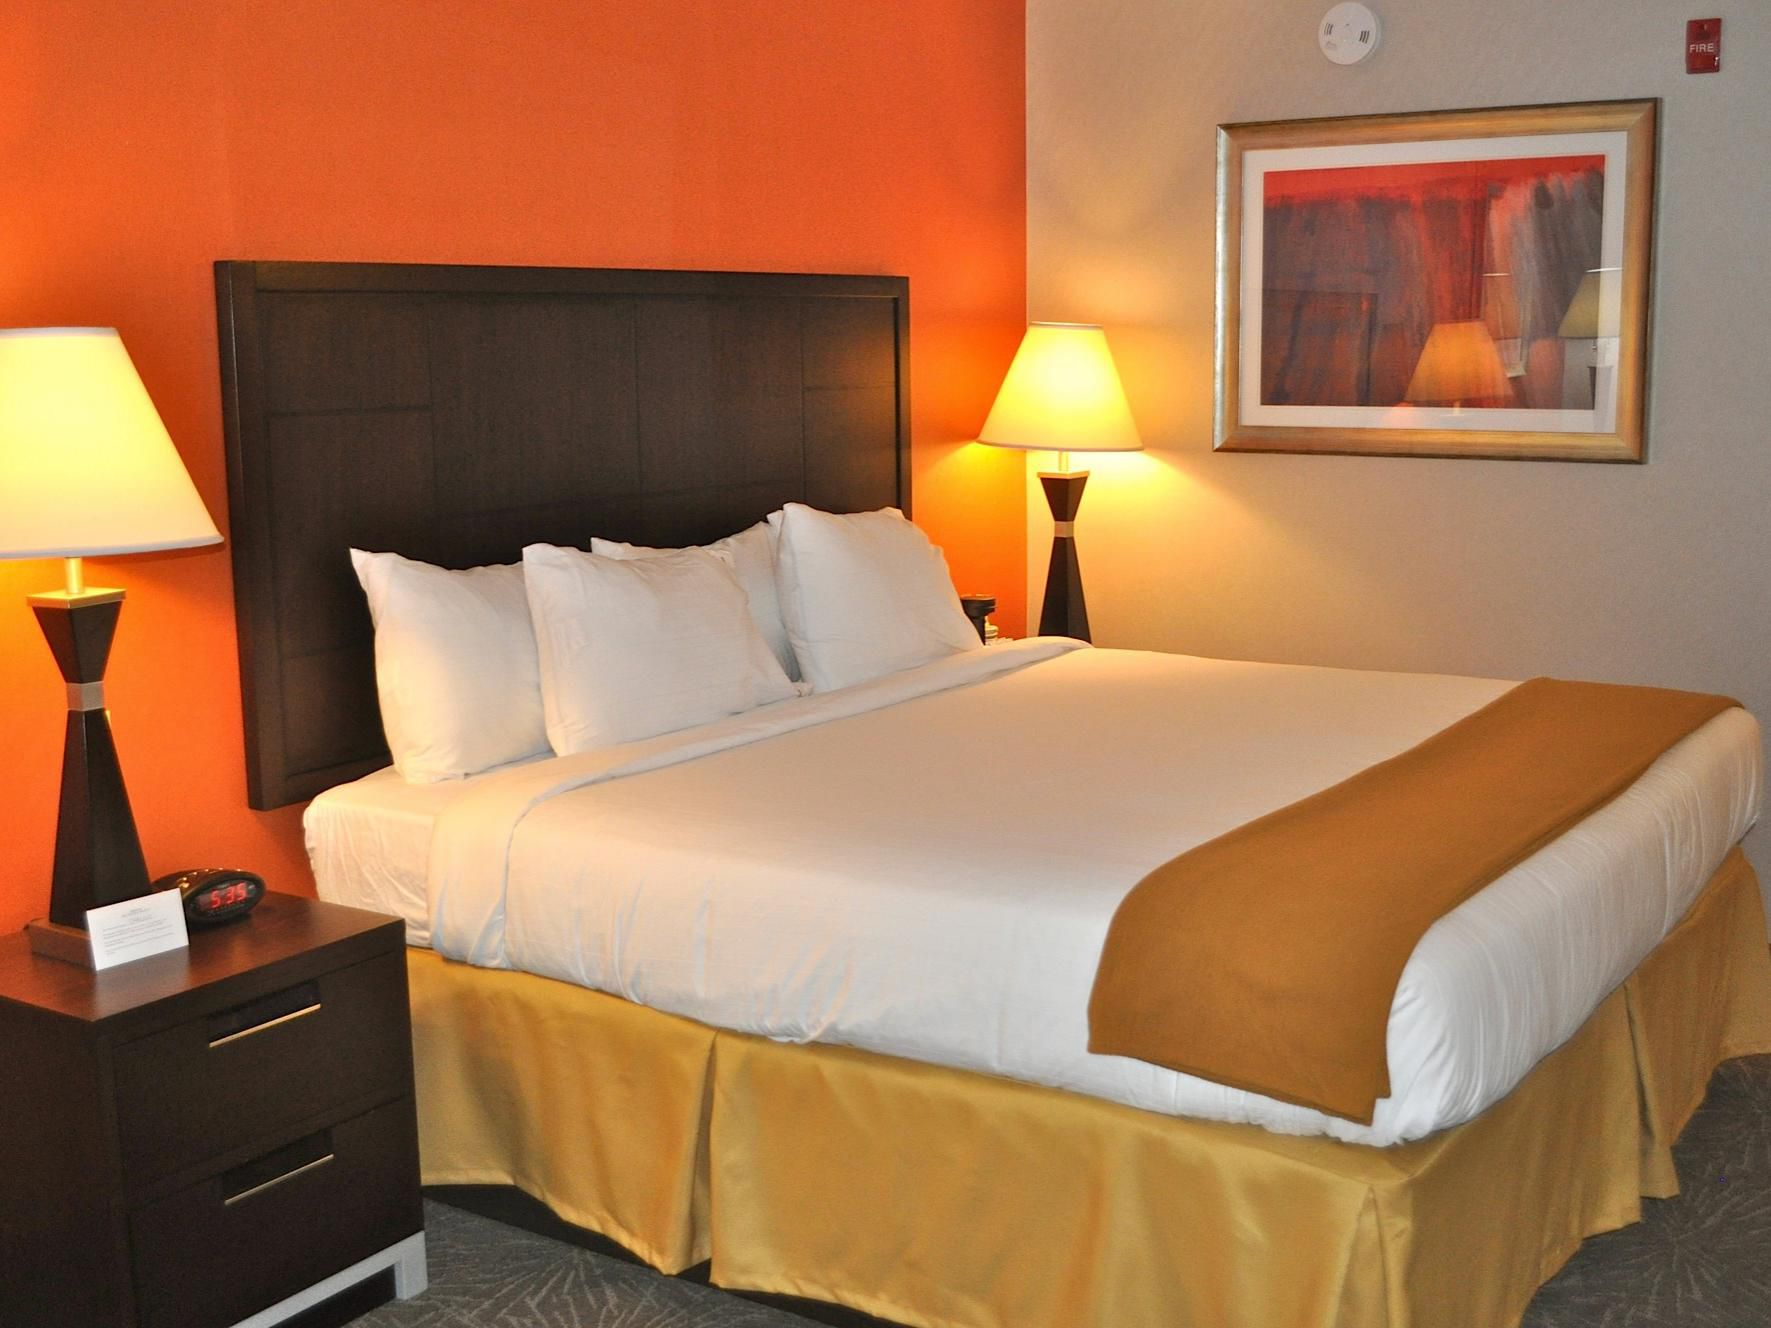 Holiday Inn Express Waterfront Mall Adjoining Room